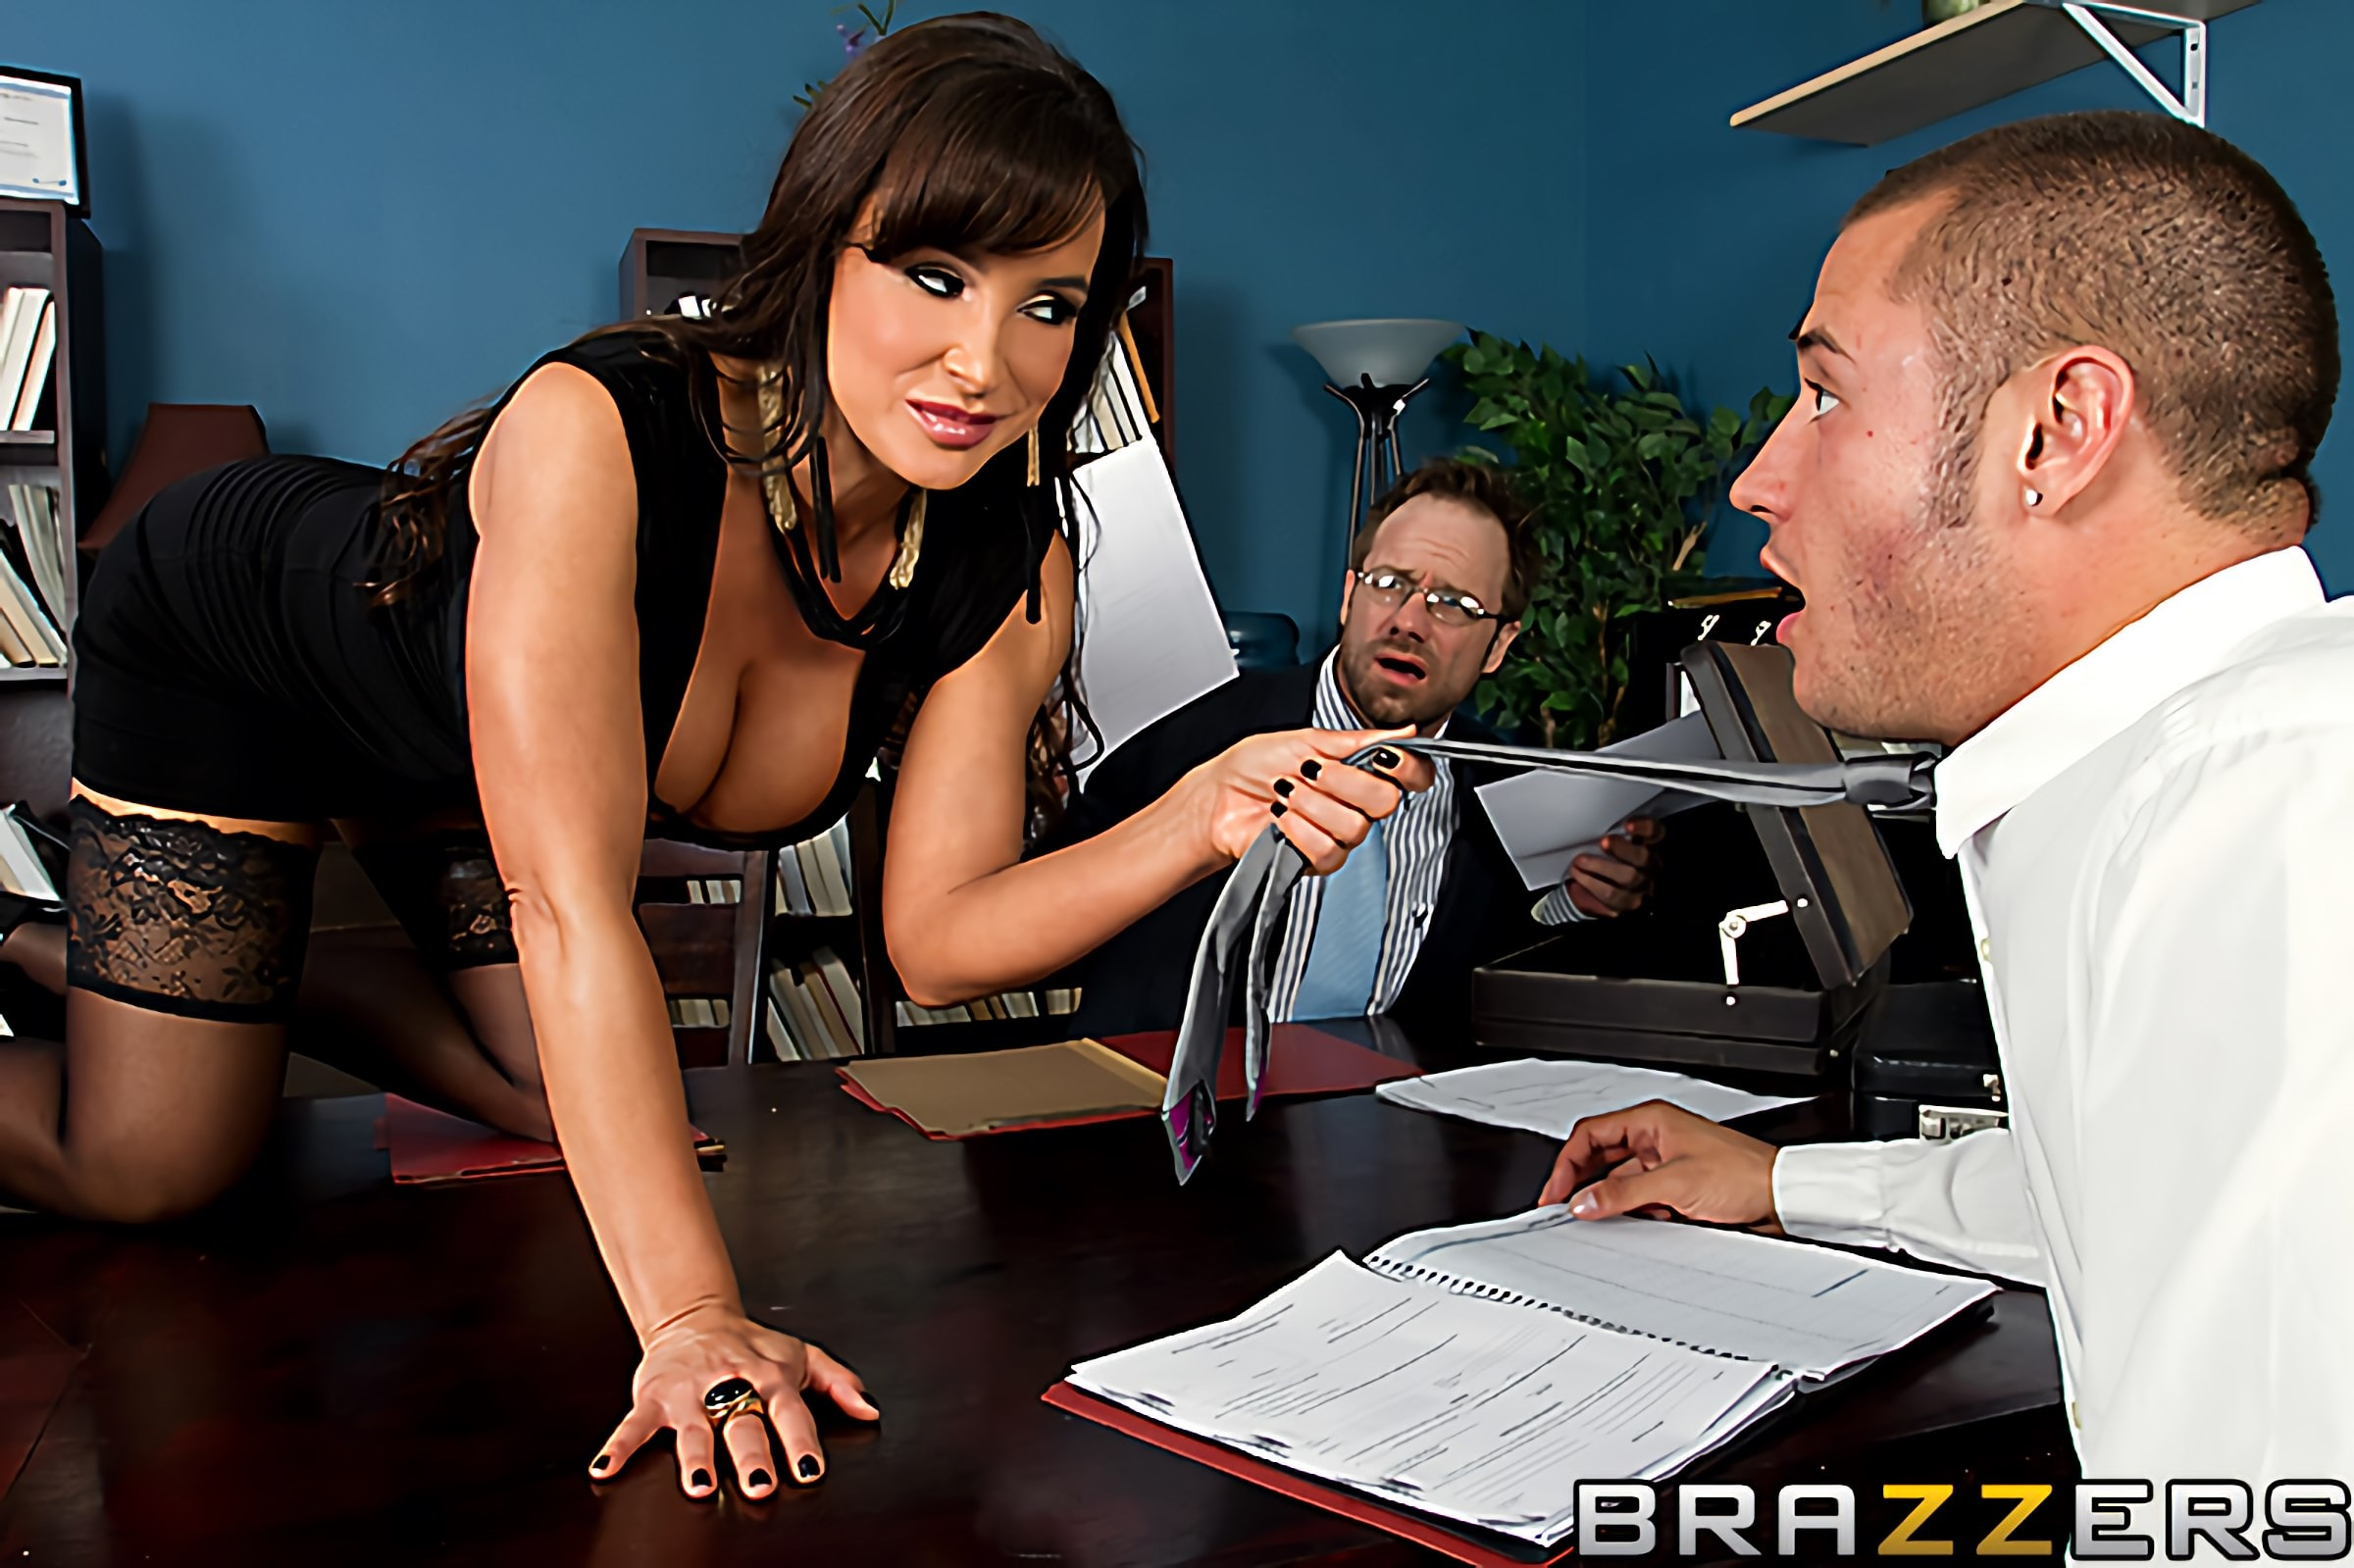 Brazzers 'Settling Out of Cunt' starring Lisa Ann (photo 2)